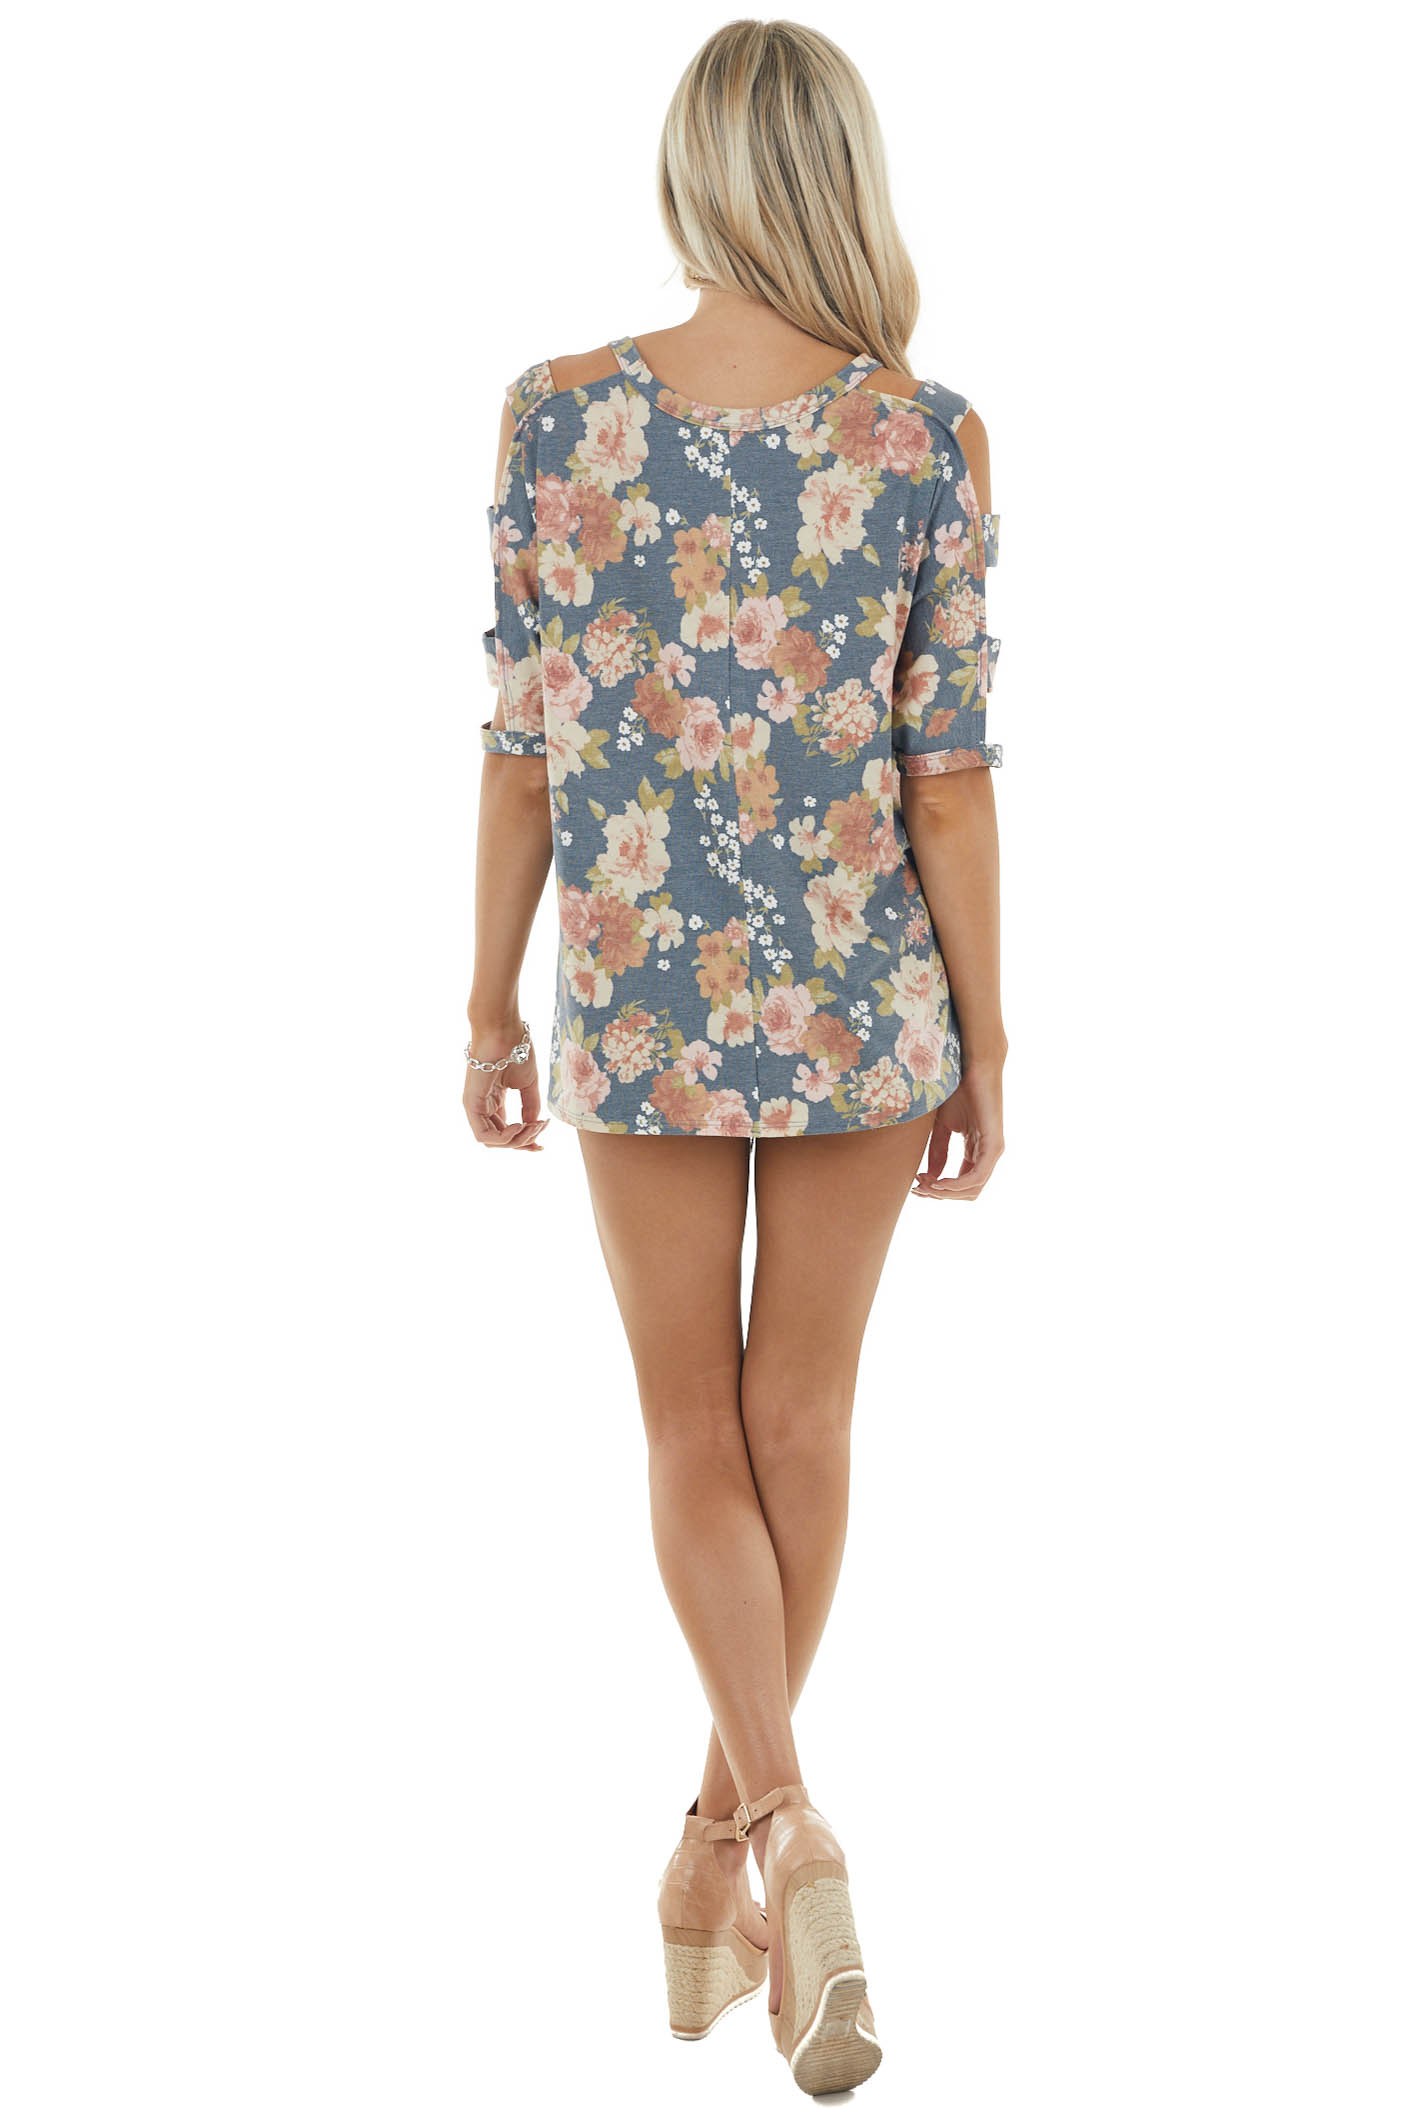 Spruce Floral Print Knit Top with Ladder Cut Out Sleeves